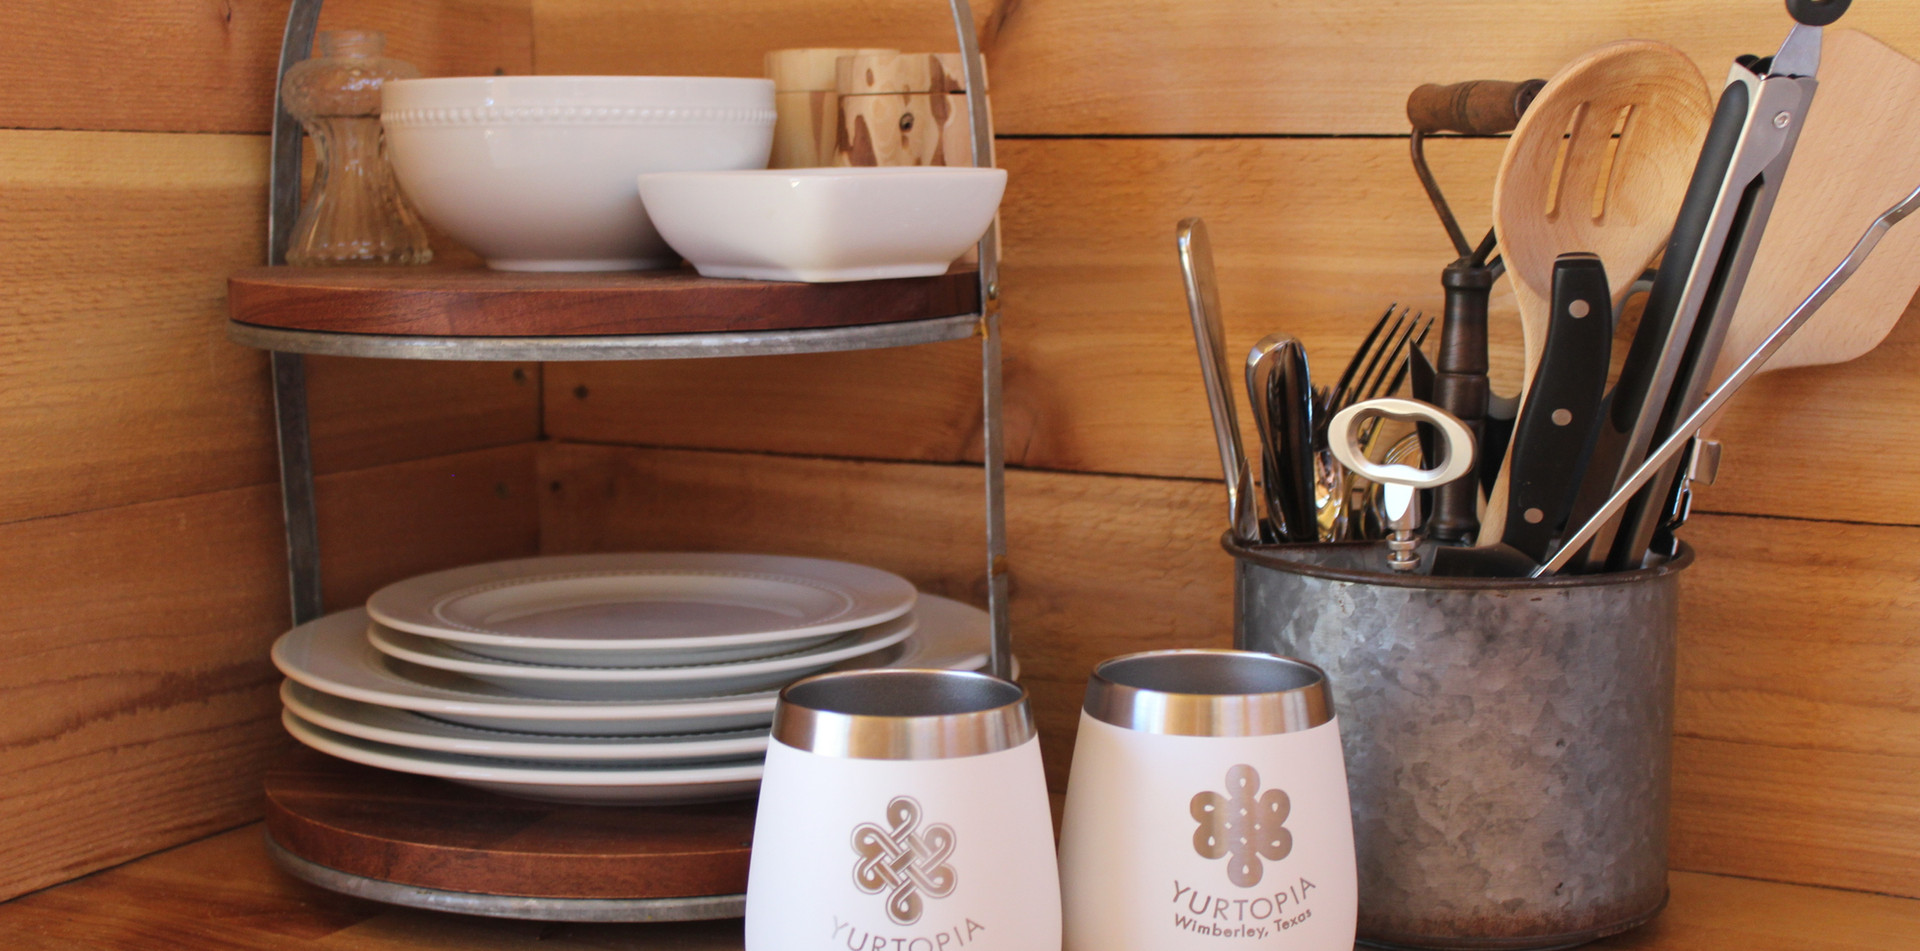 Yeti tumblers put the glamp in glamping